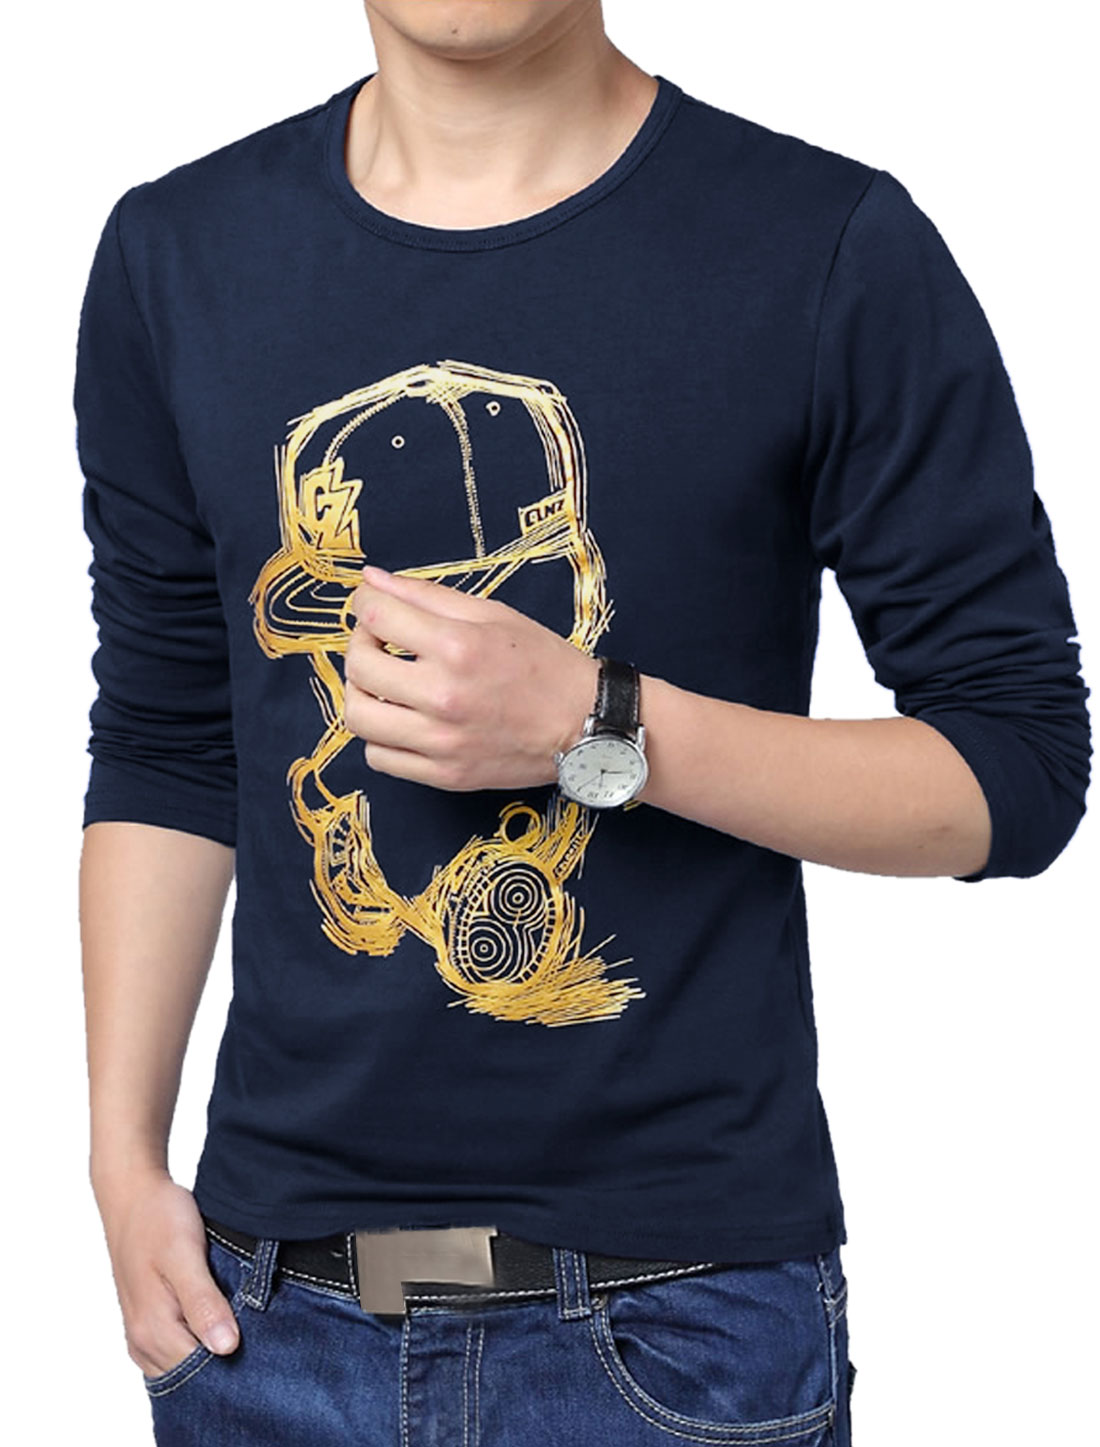 Men Fitting Style Cartoon Prints Designed Casual T-shirt Navy Blue L